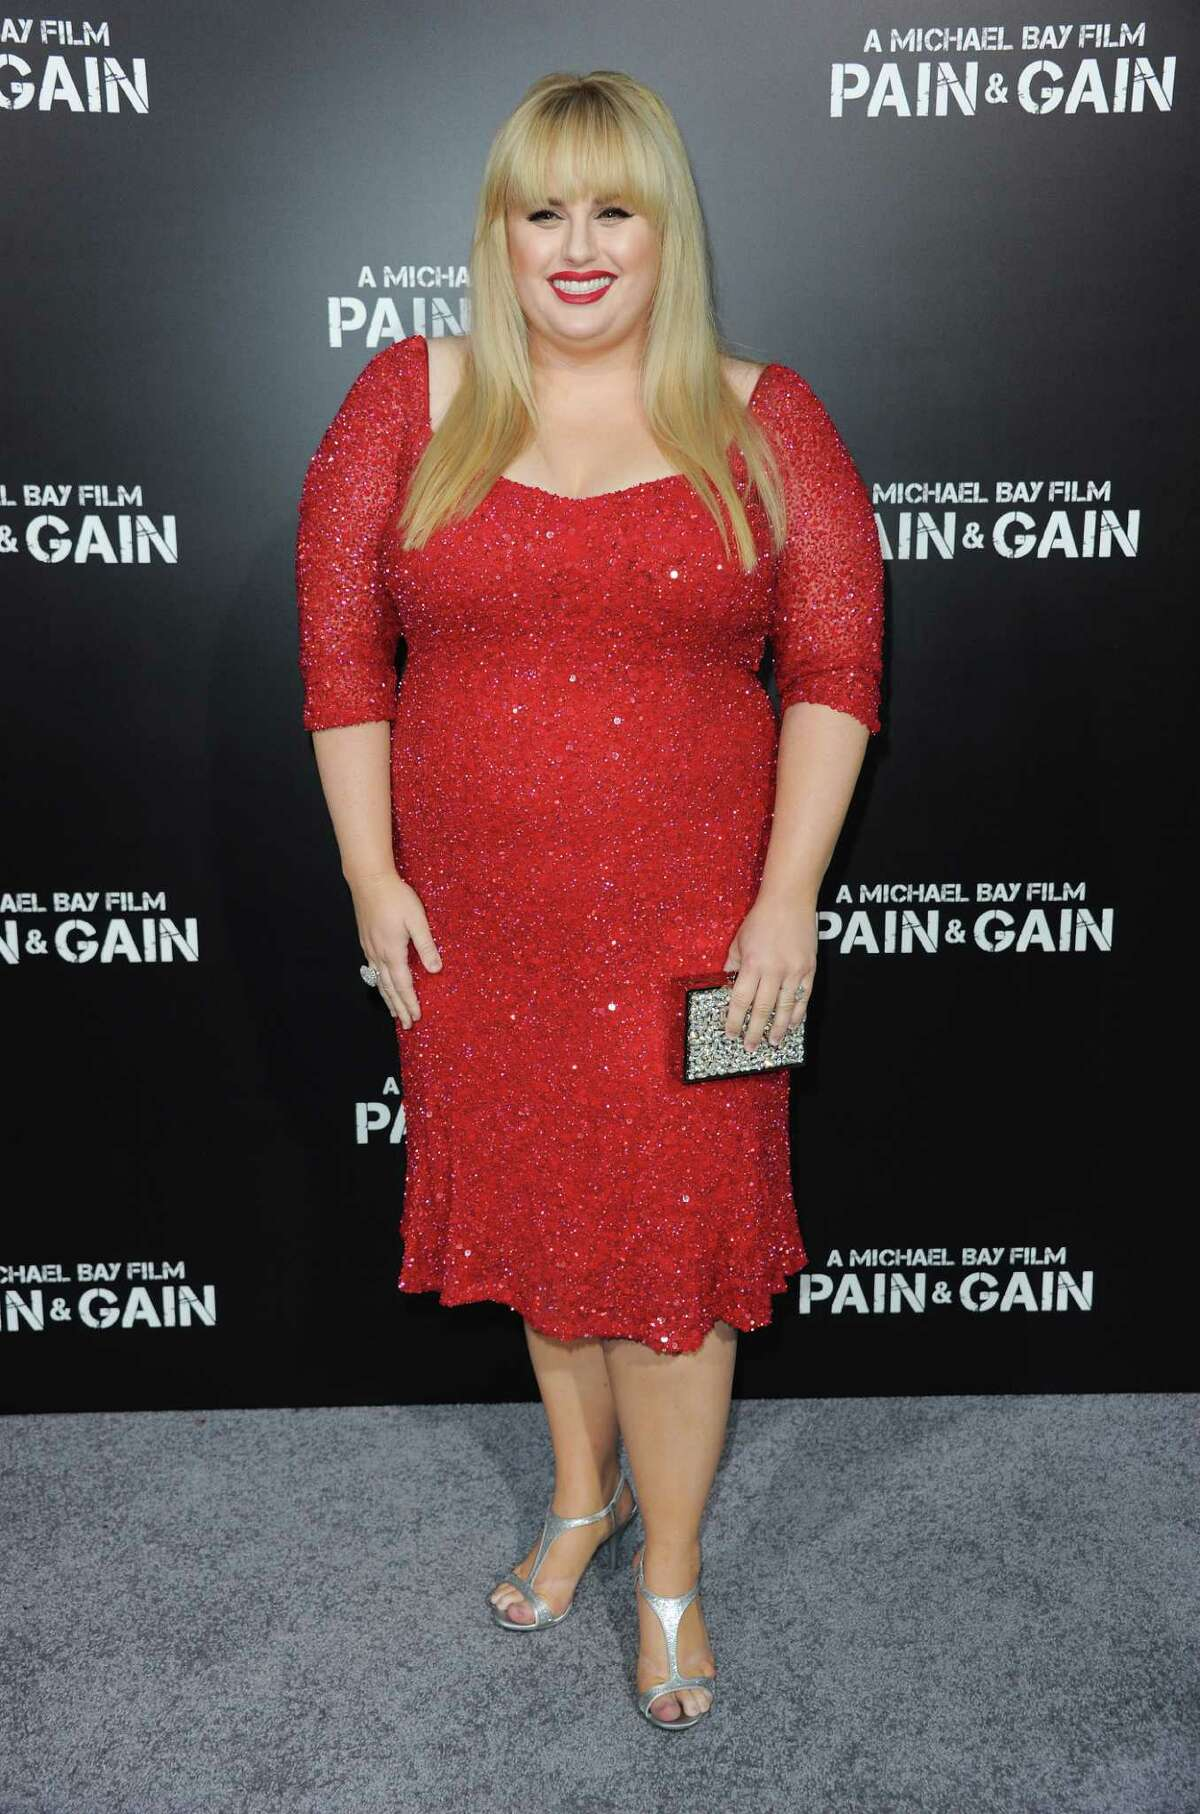 """Rebel Wilson arrives at the LA Premiere of """"Pain and Gain"""" at the TCL Theatre on Monday, April 22, 2013 in Hollywood, Calif. (Photo by Richard Shotwell/Invision/AP)"""